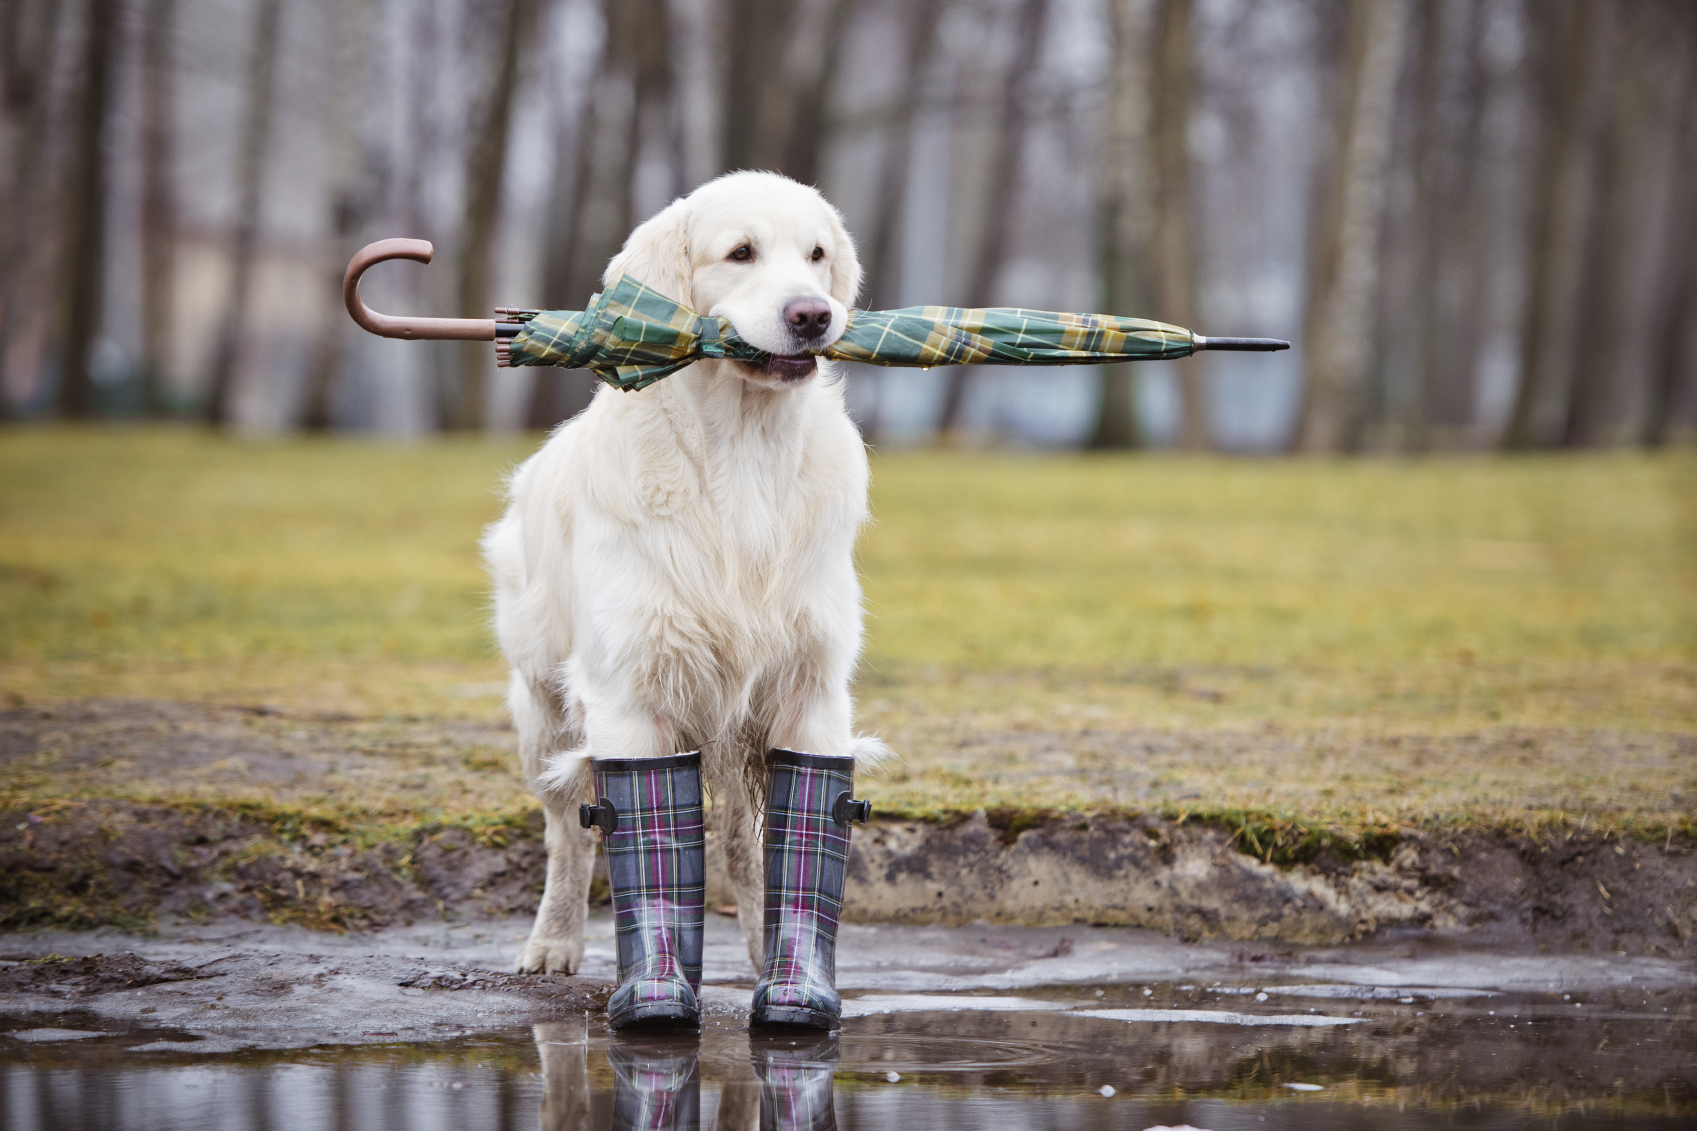 Help your friend's pup brave the elements image: alona rjabceva